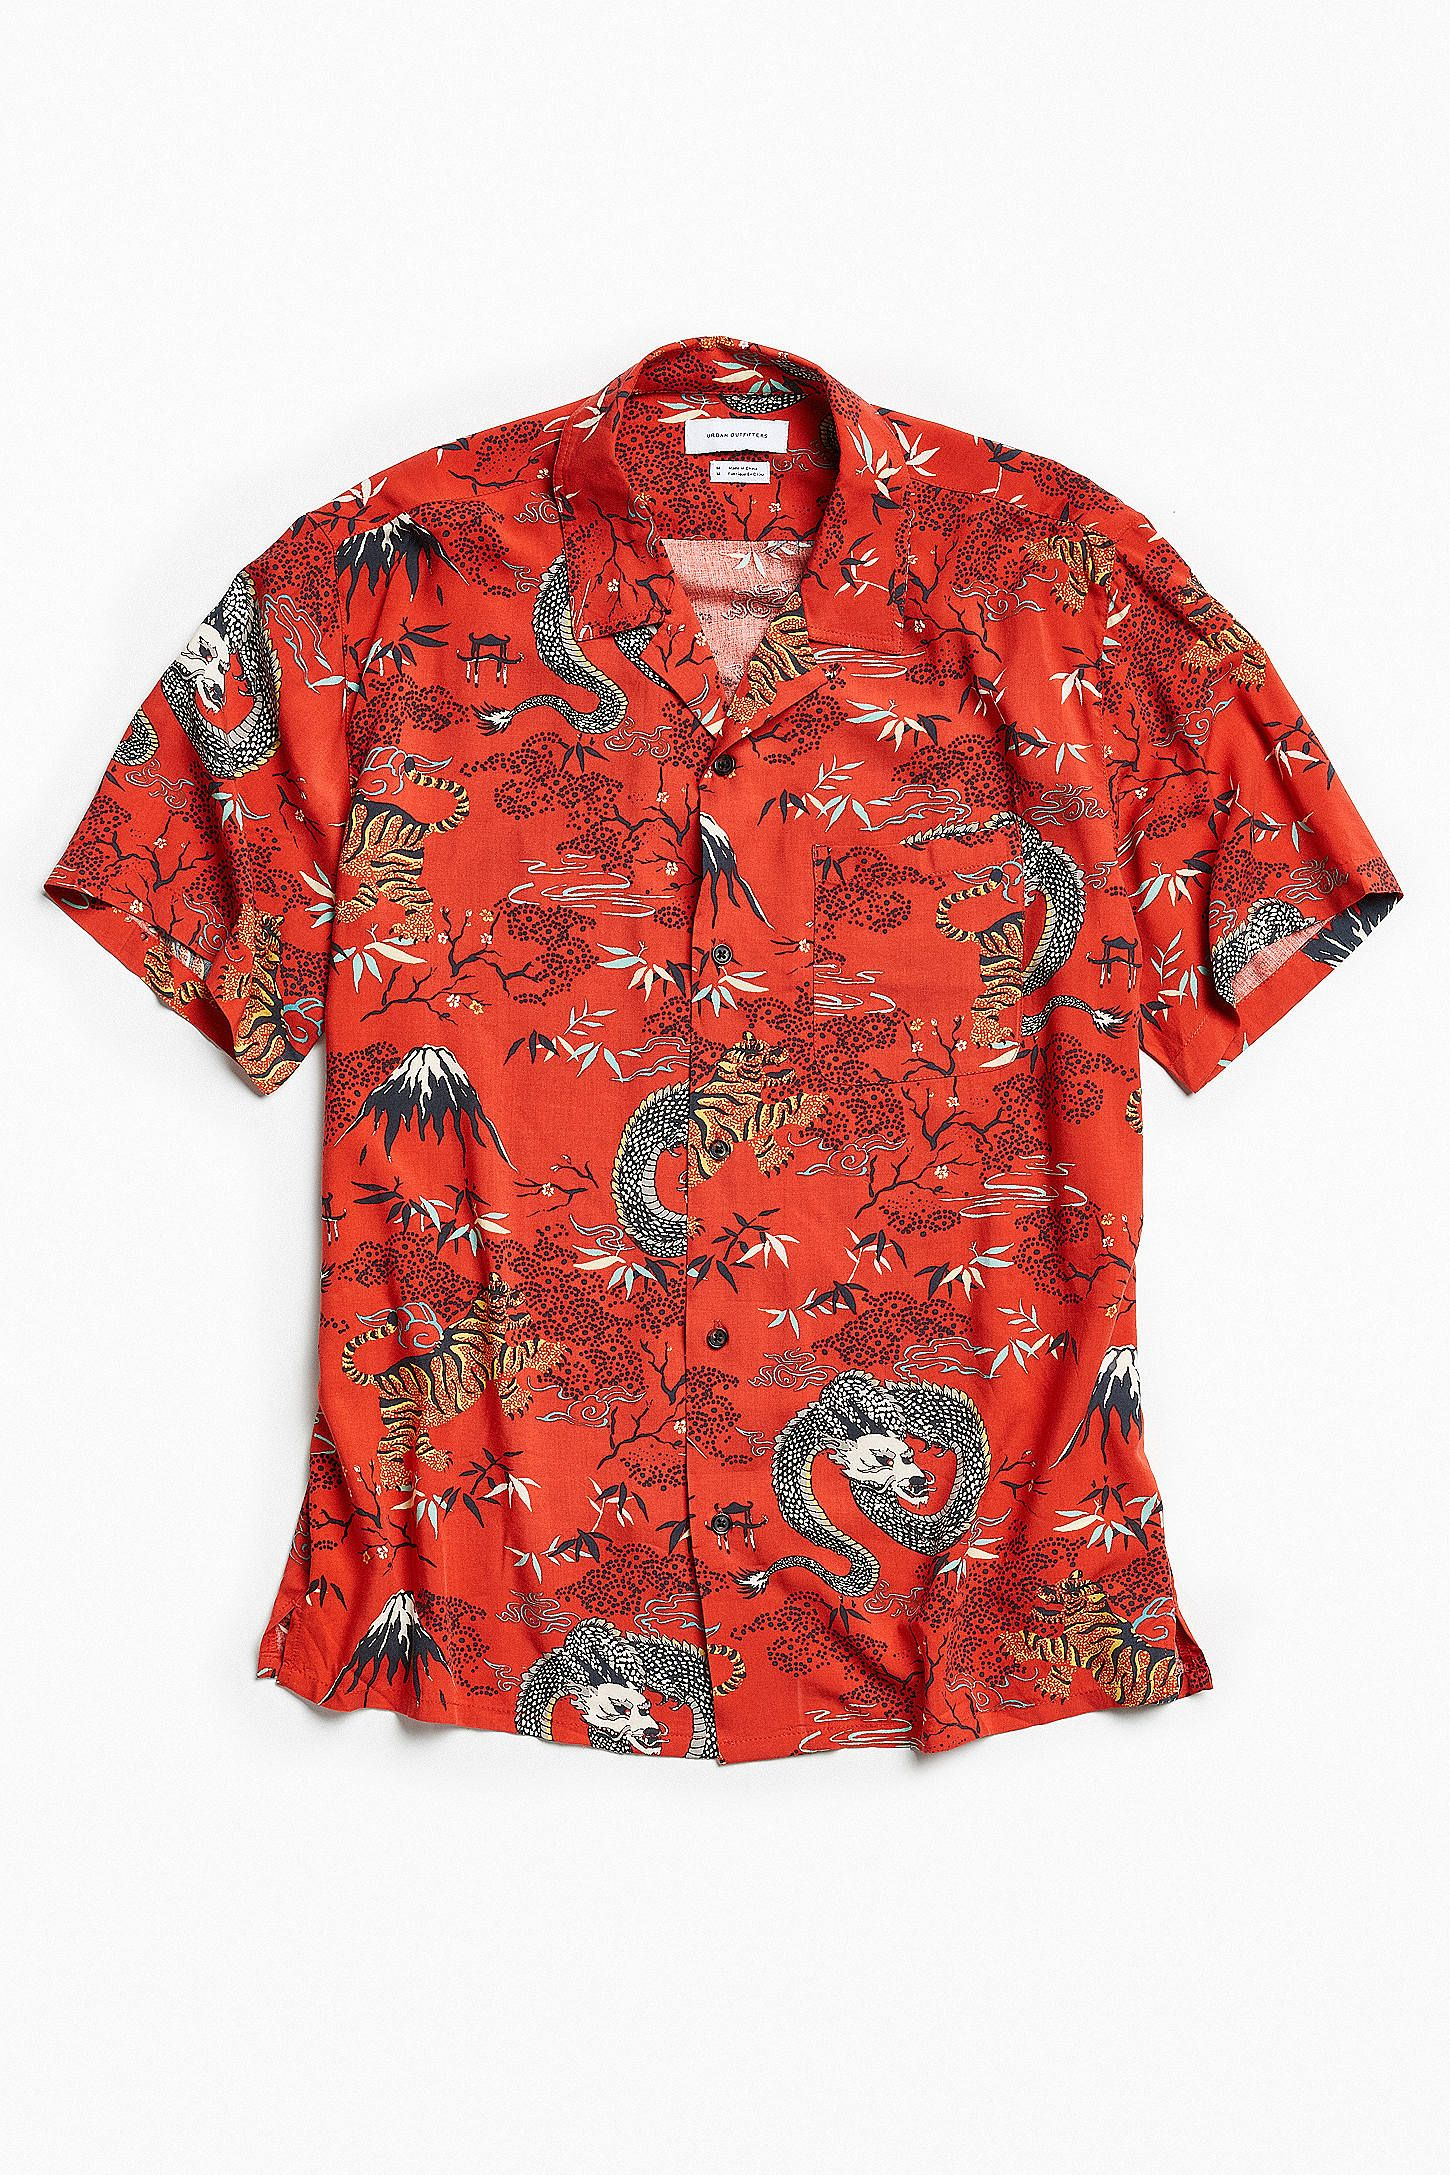 64c88197435 UO Red Dragon Rayon Short Sleeve Button-Down Shirt